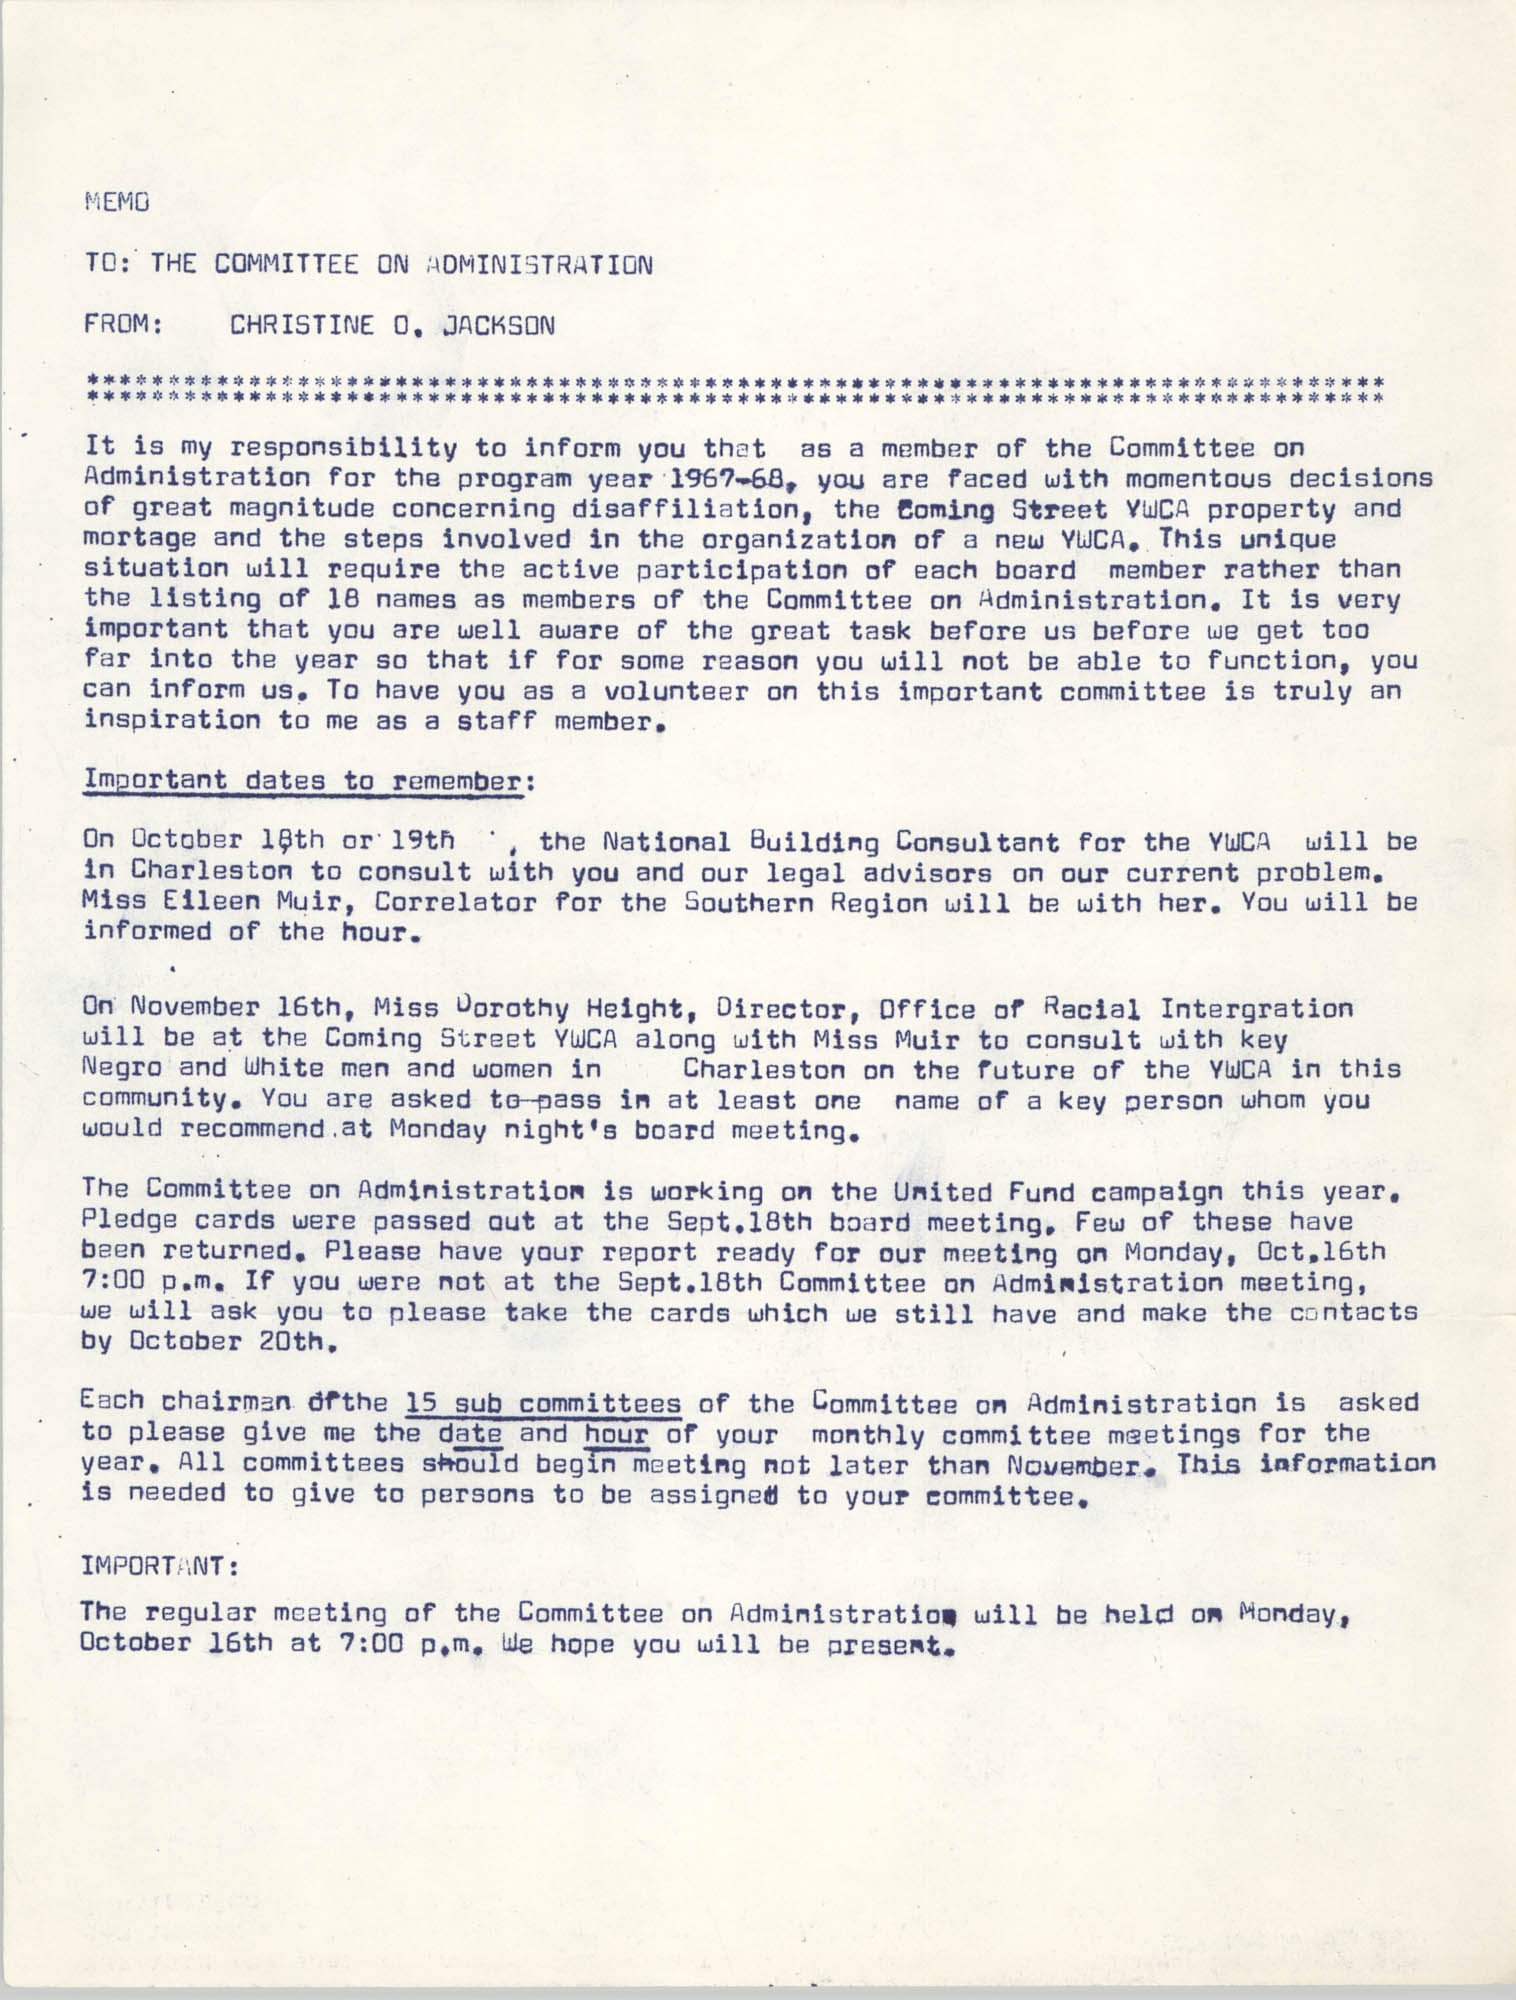 Coming Street Y.W.C.A. Memorandum, October 1967